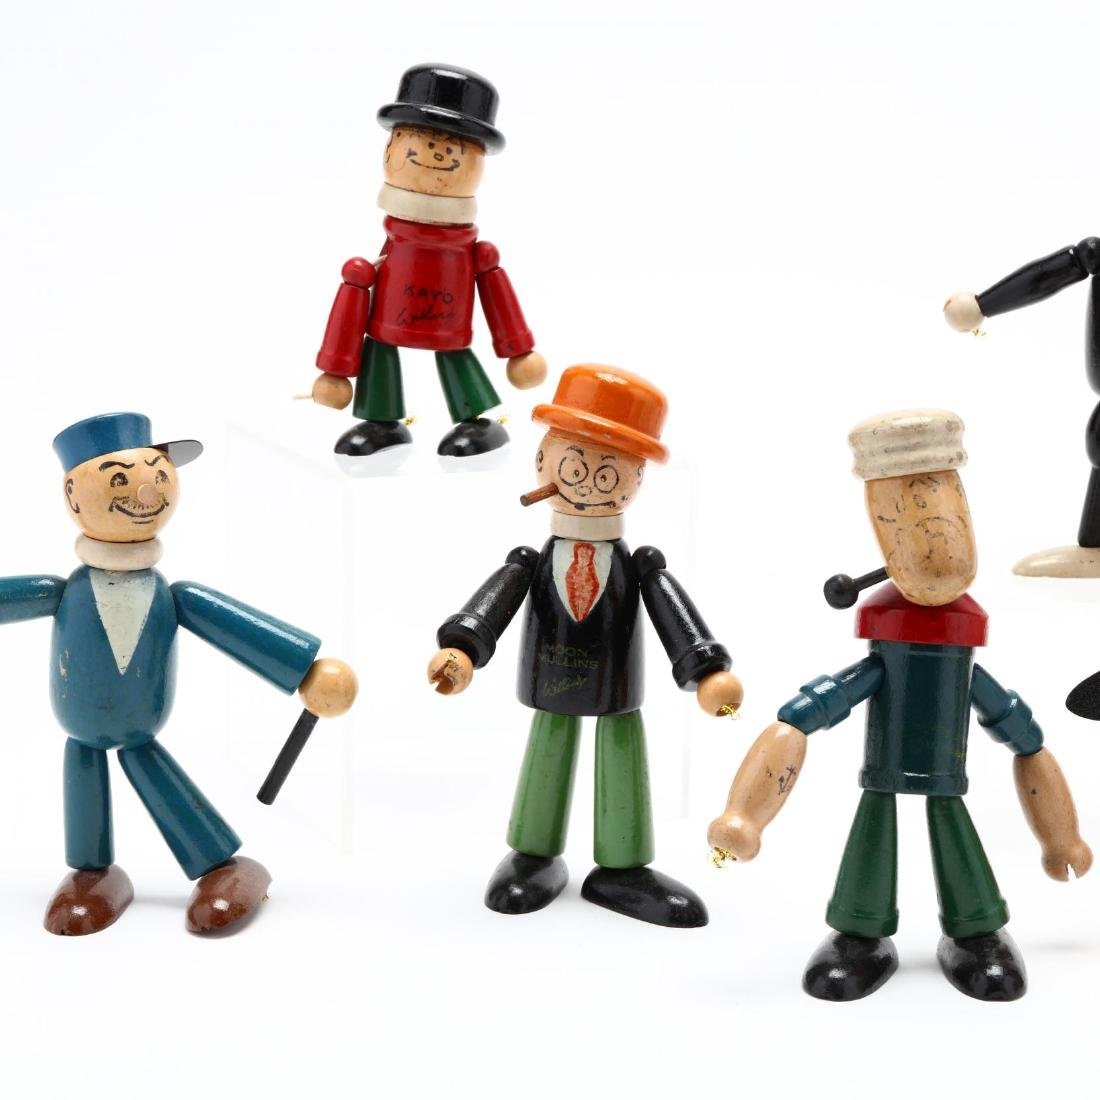 A Group of Articulated Wooden Toys - 2